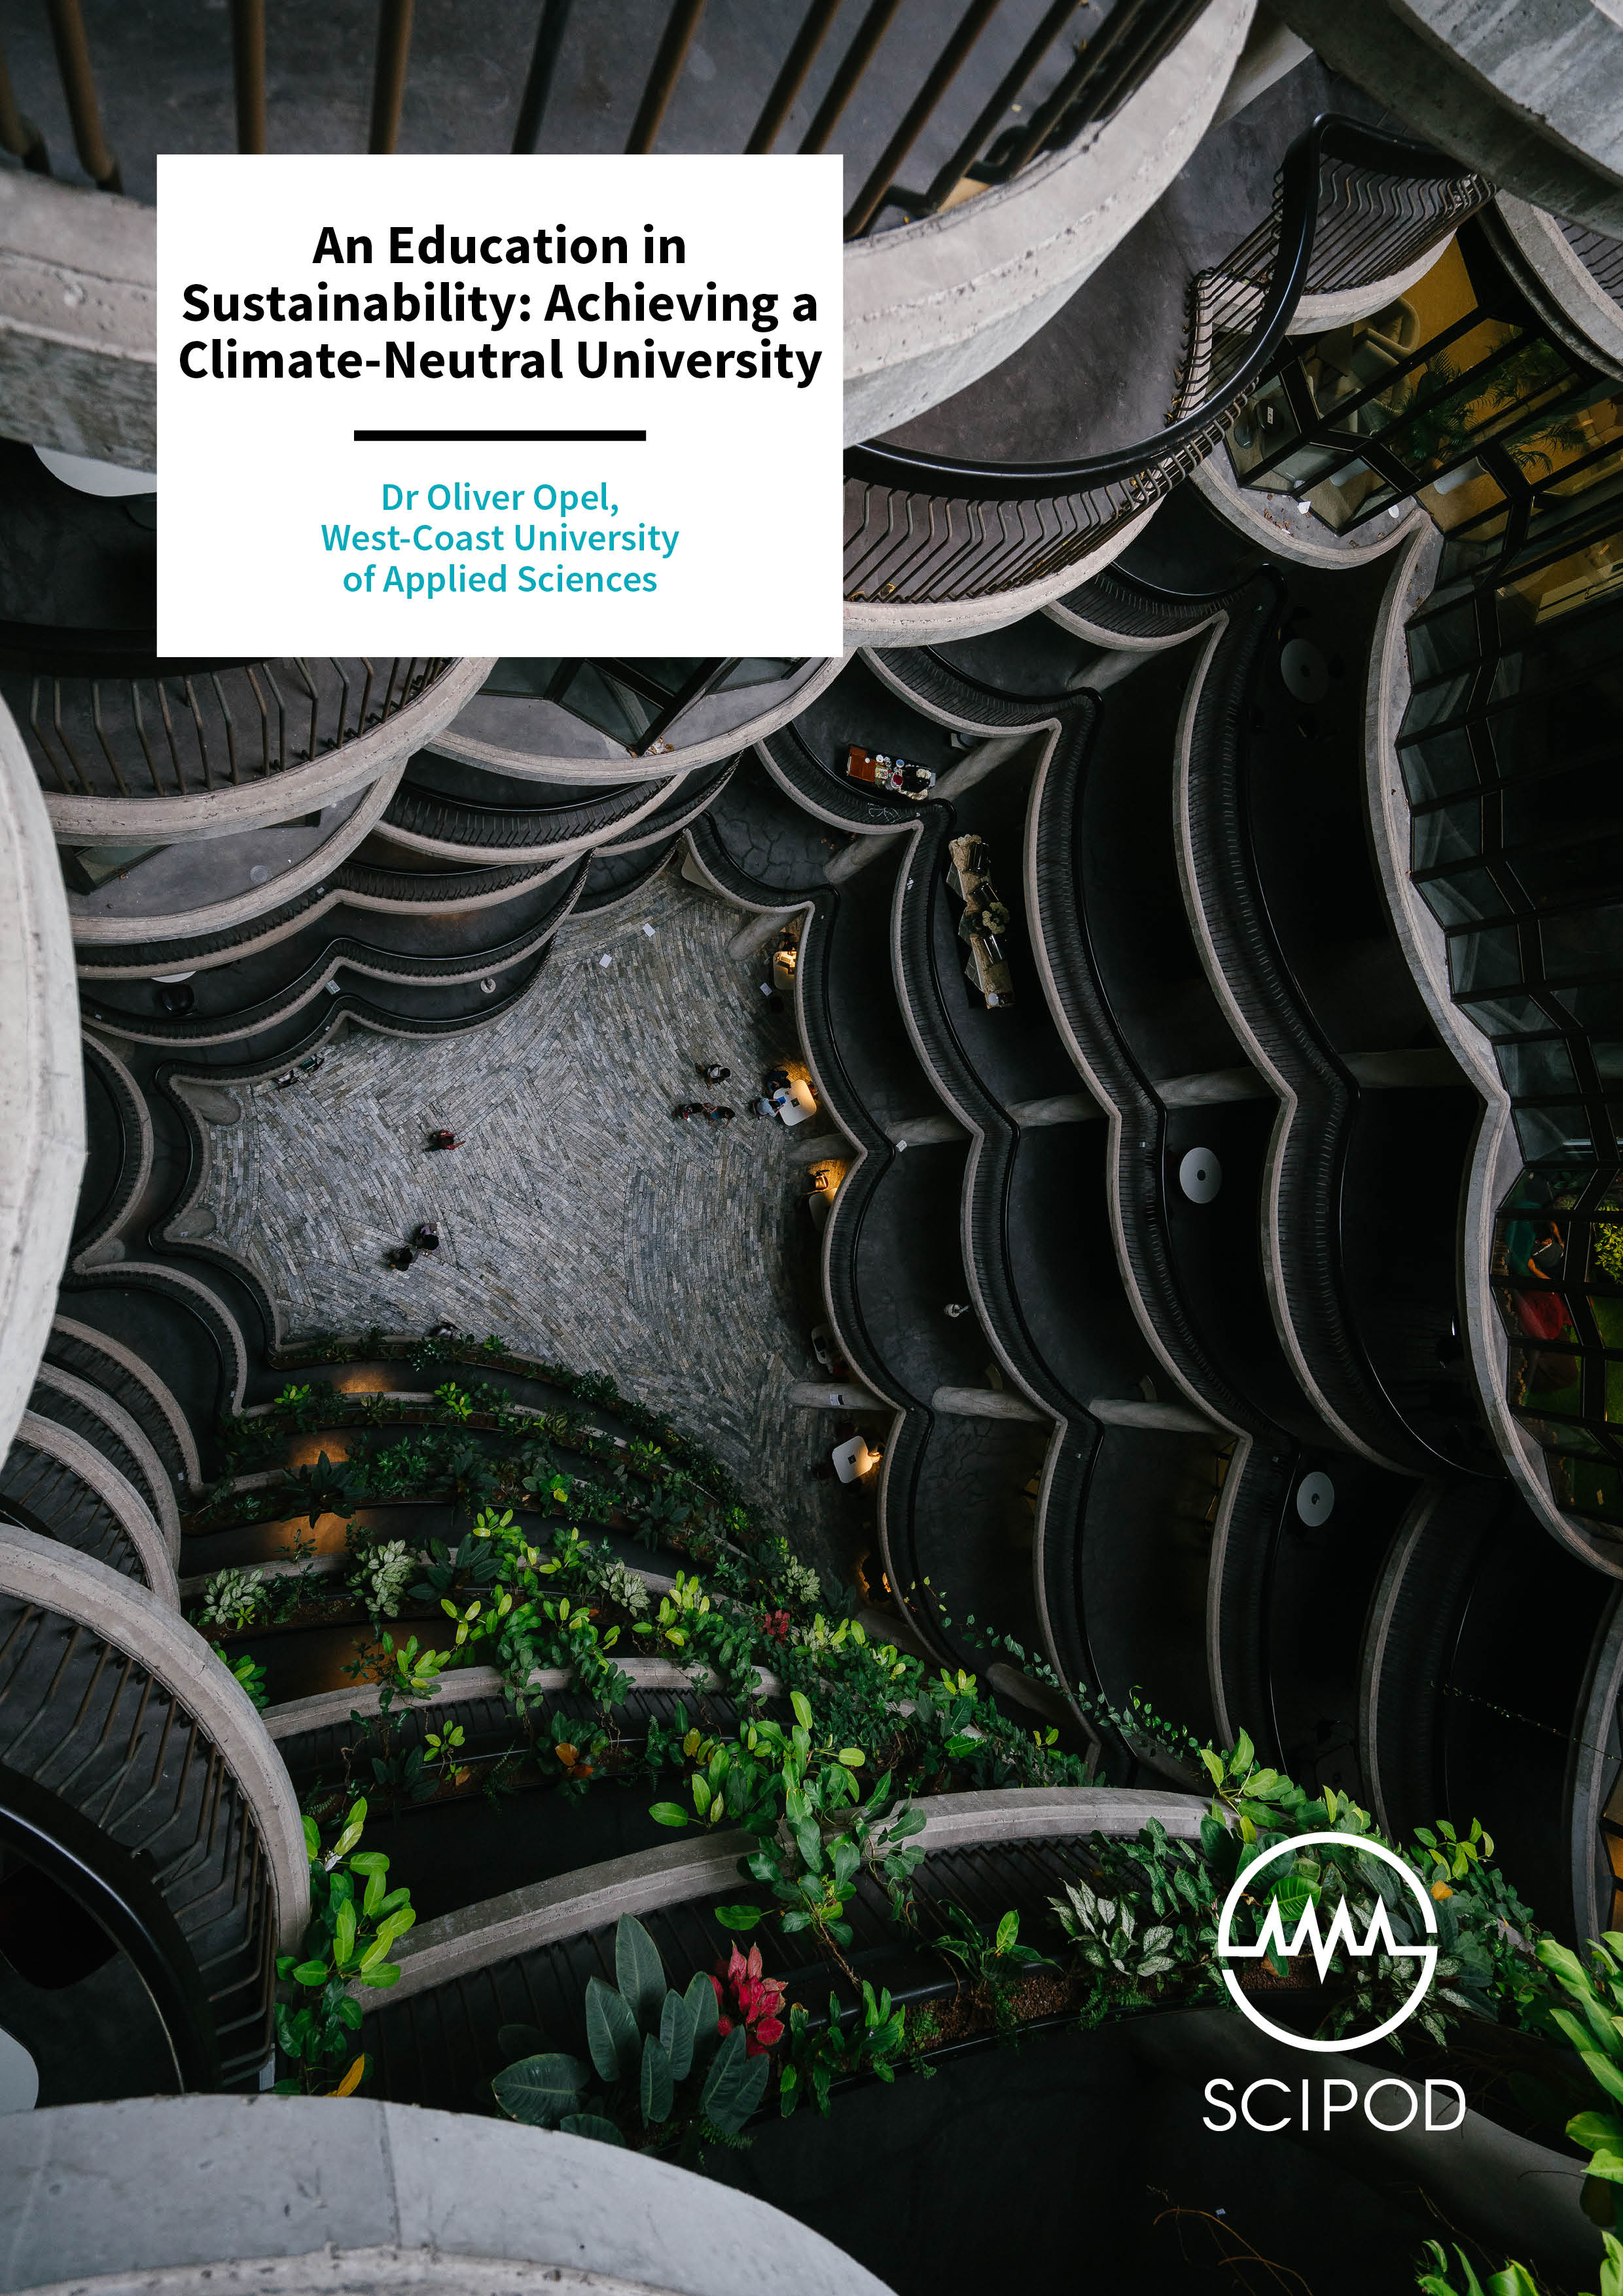 An Education in Sustainability Achieving a Climate-Neutral University – Dr Oliver Opel, West-Coast University of Applied Sciences